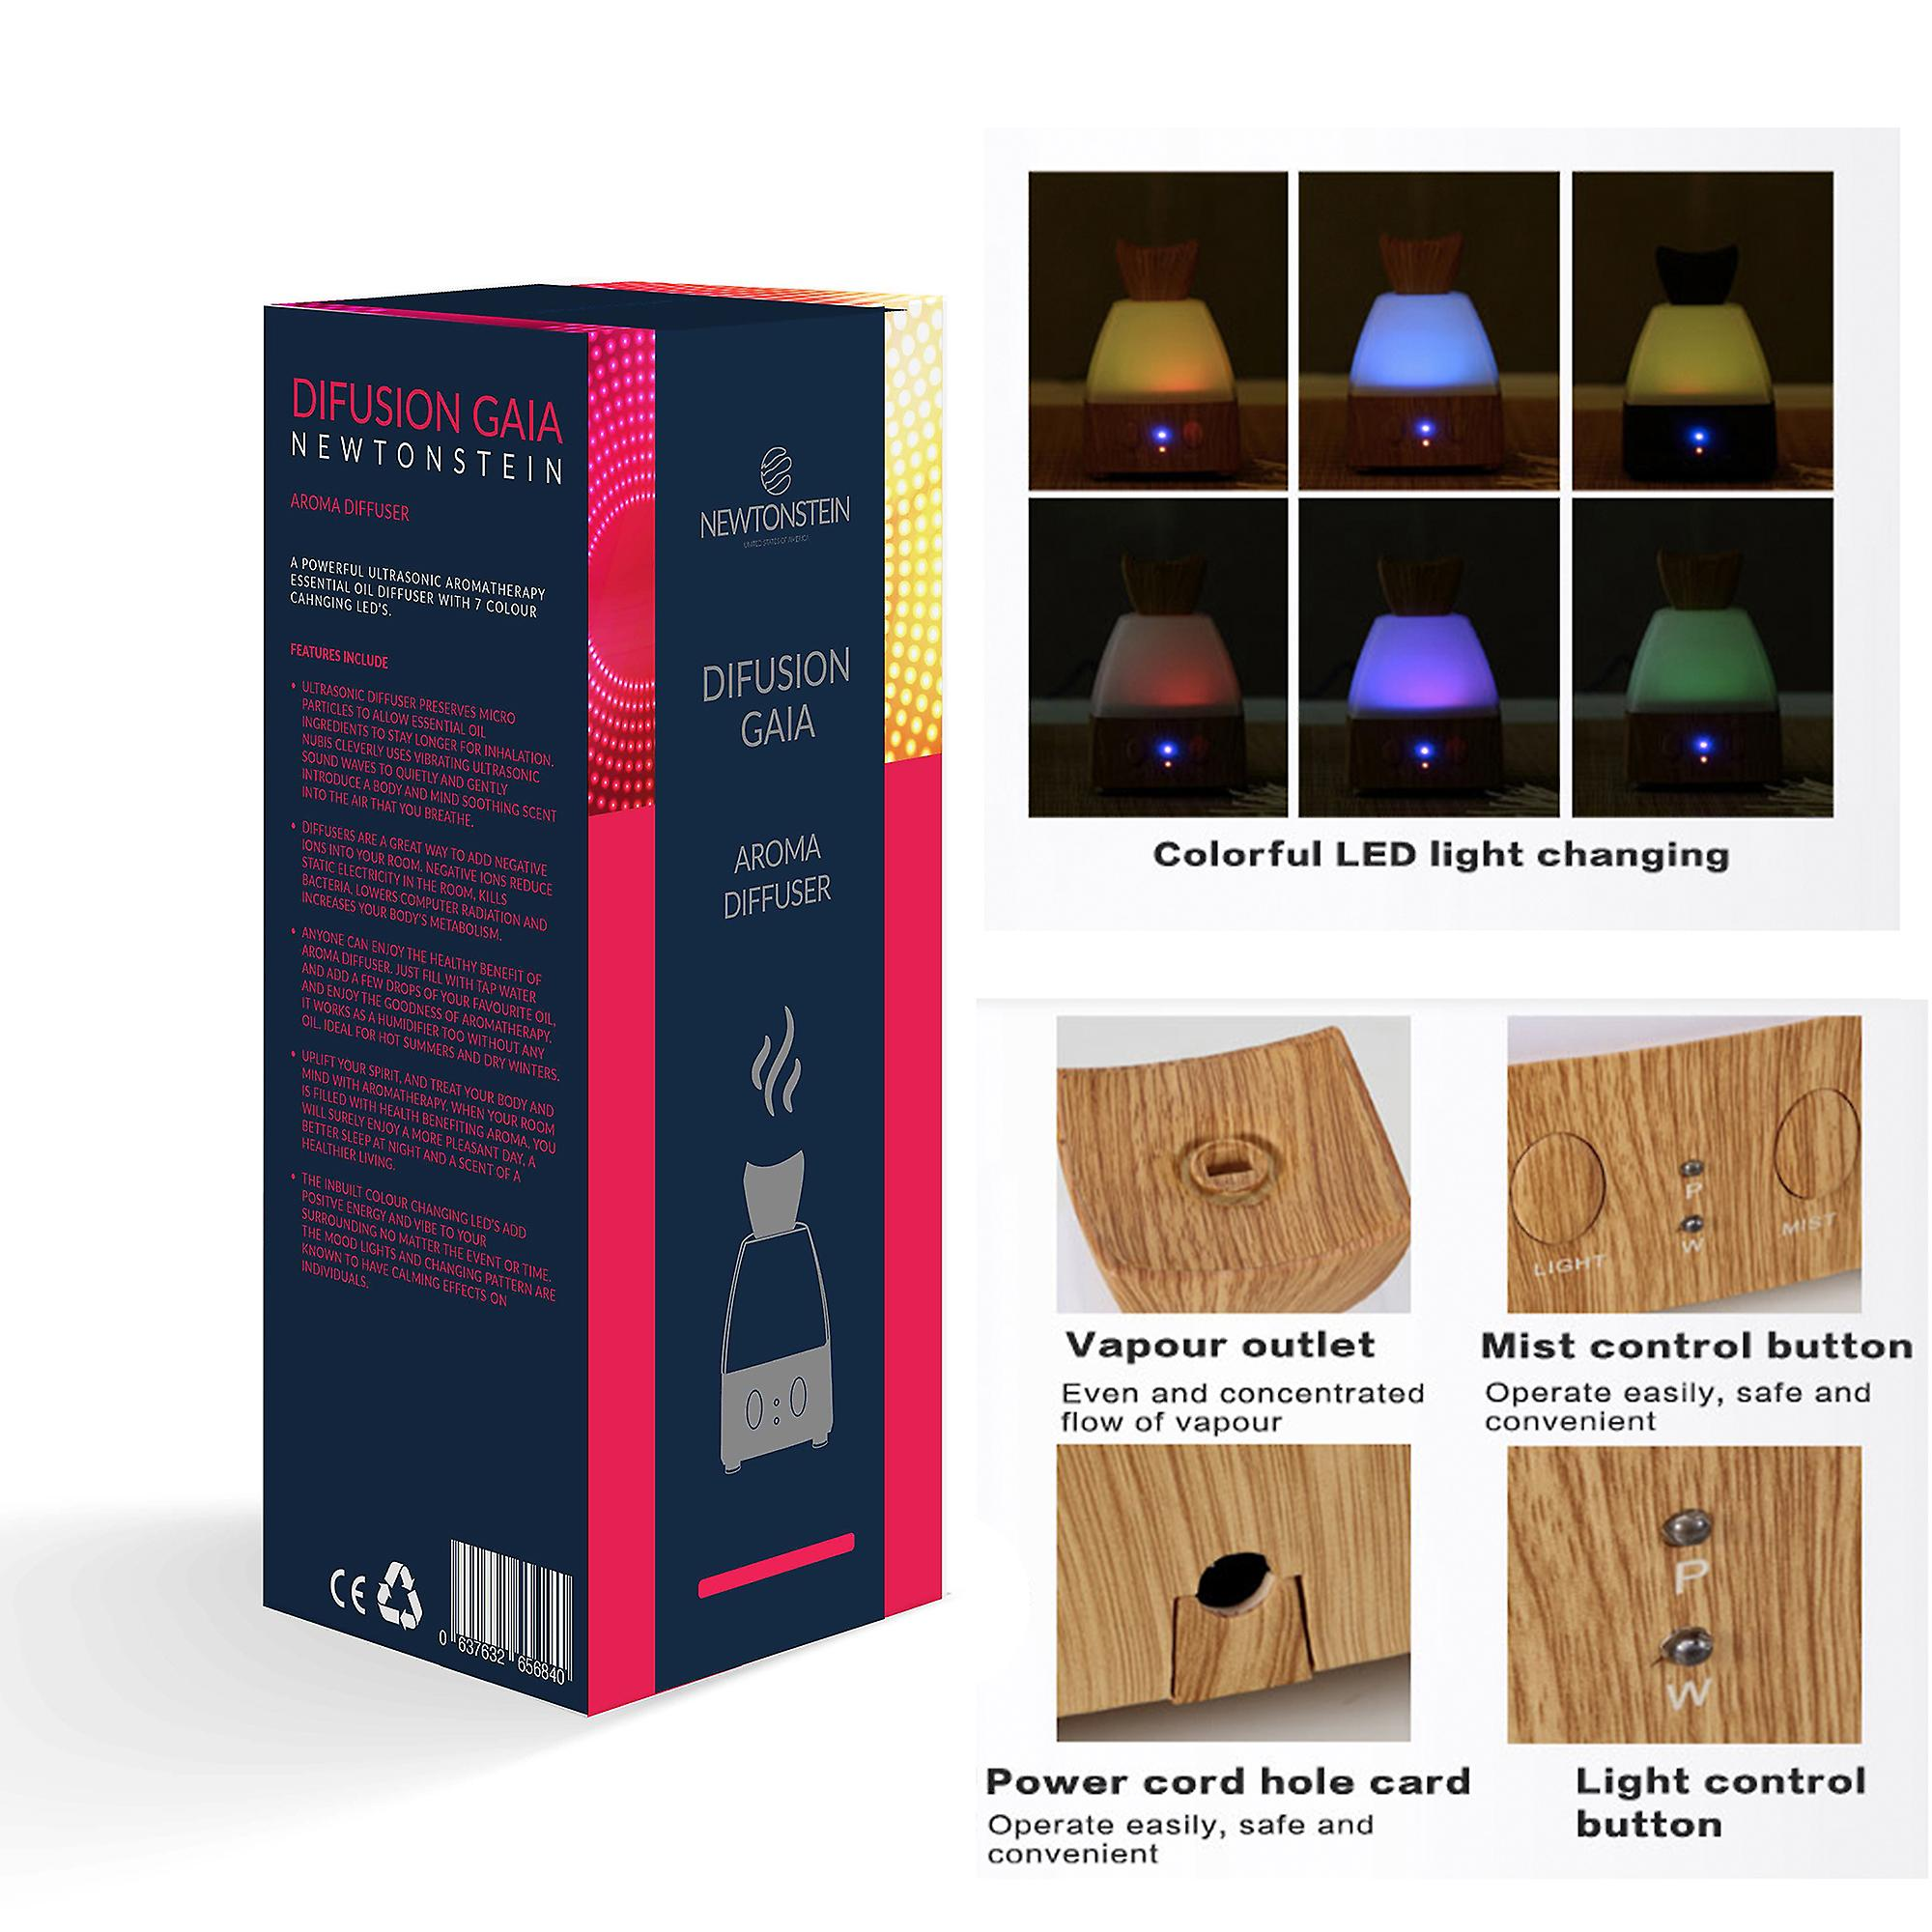 Difusian GAIA - A Powerful Ultrasonic Aroma Therapy Essential Oil Diffuser with Color Changing LEDs Auto Timer + 4 FREE 10ml Essential Oil Bottles Included (Tea Trea Peppermint Lavender and Eucalyptus) - for Home Yoga Office Spa Bedroom Baby Room Etc.